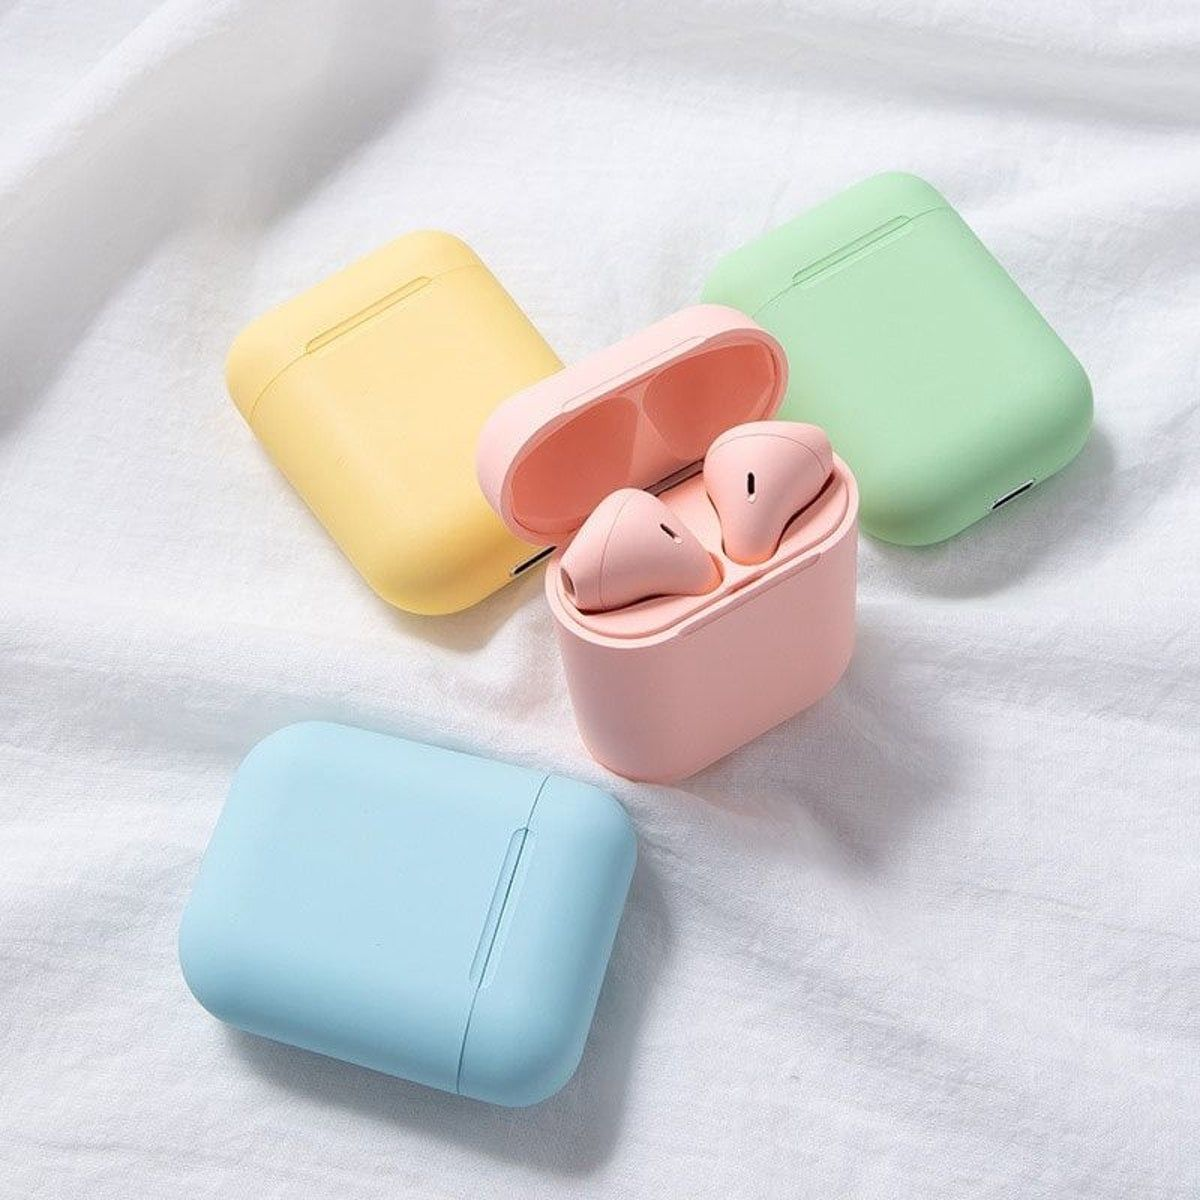 Brand New Airpods Non Apple Cute Ipod Cases Bluetooth Earphones Apple Products